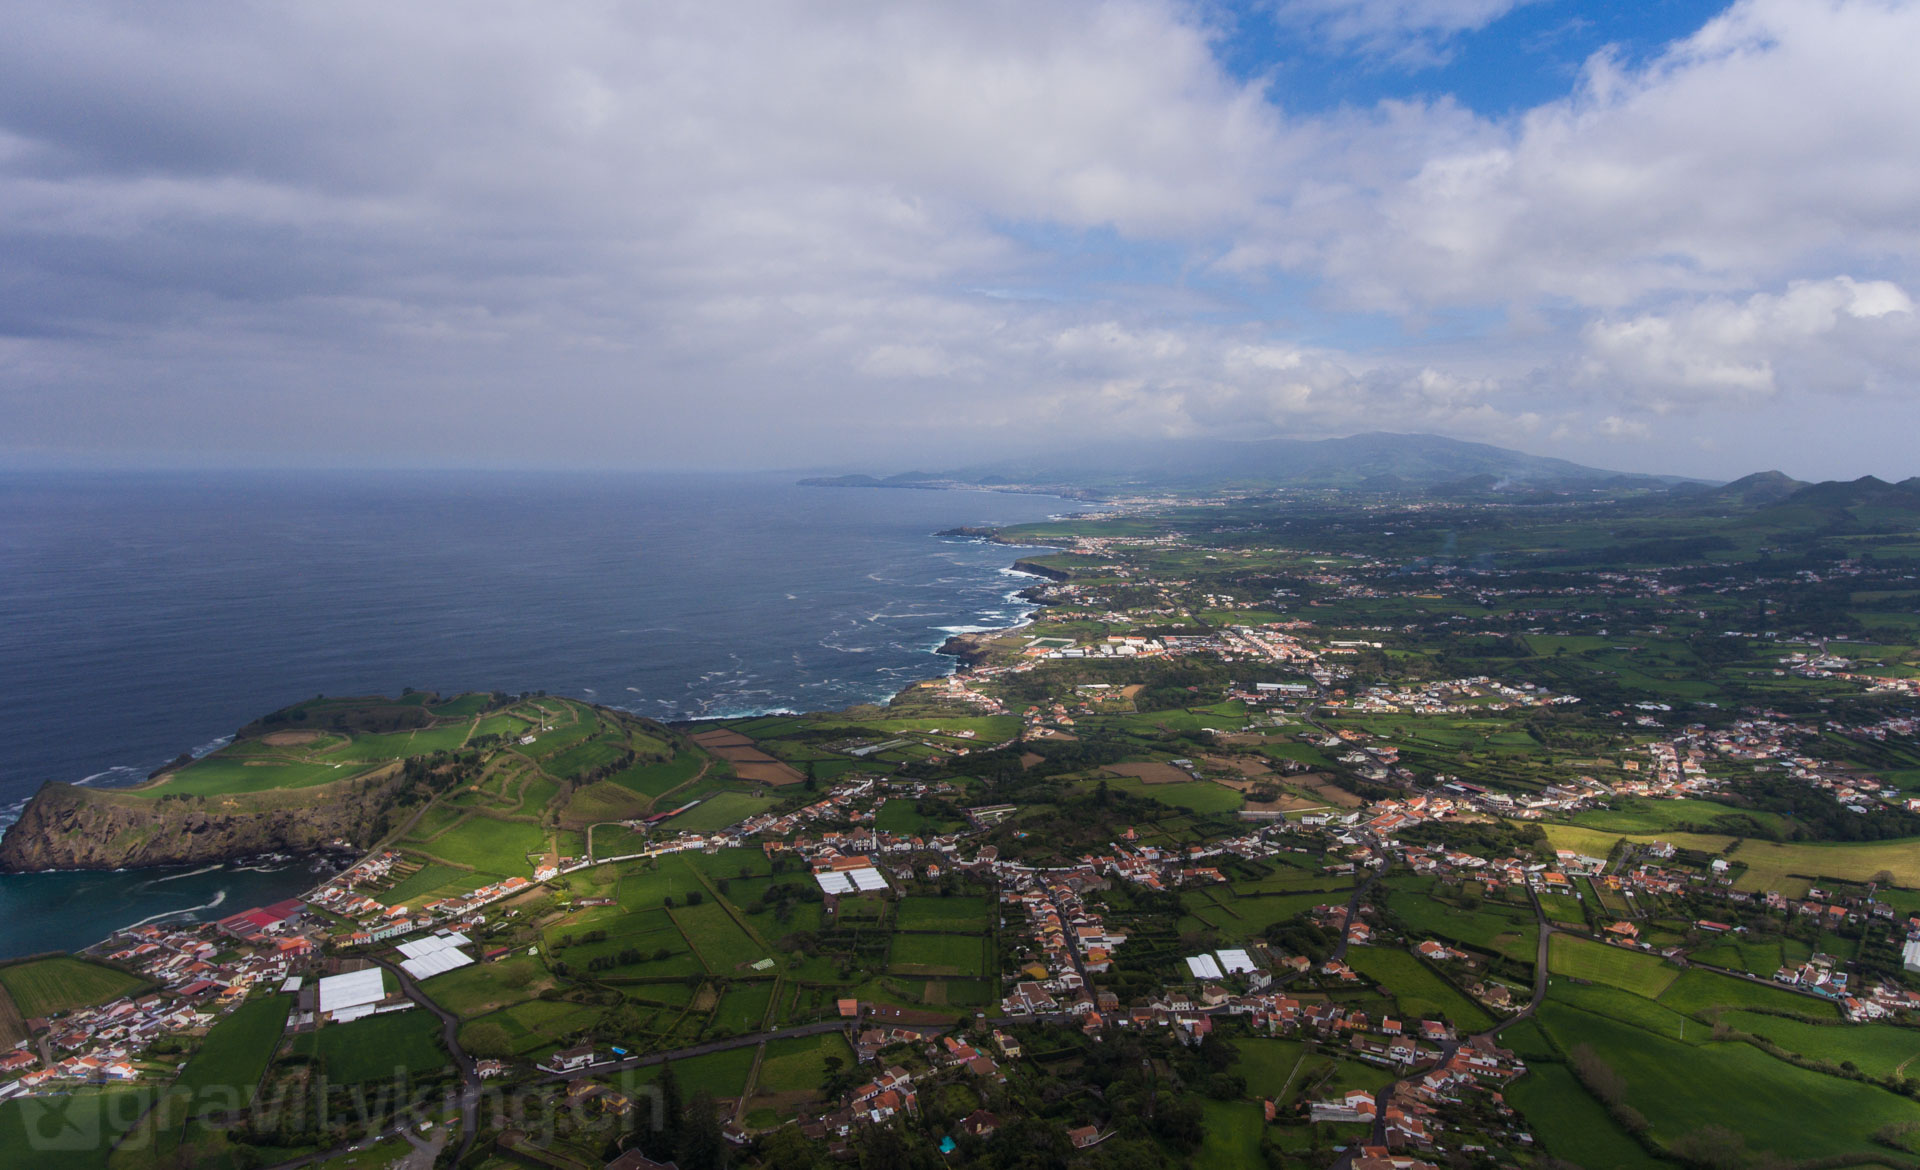 Aerial view from the surfhouse in Capelas, São Miguel, Azores